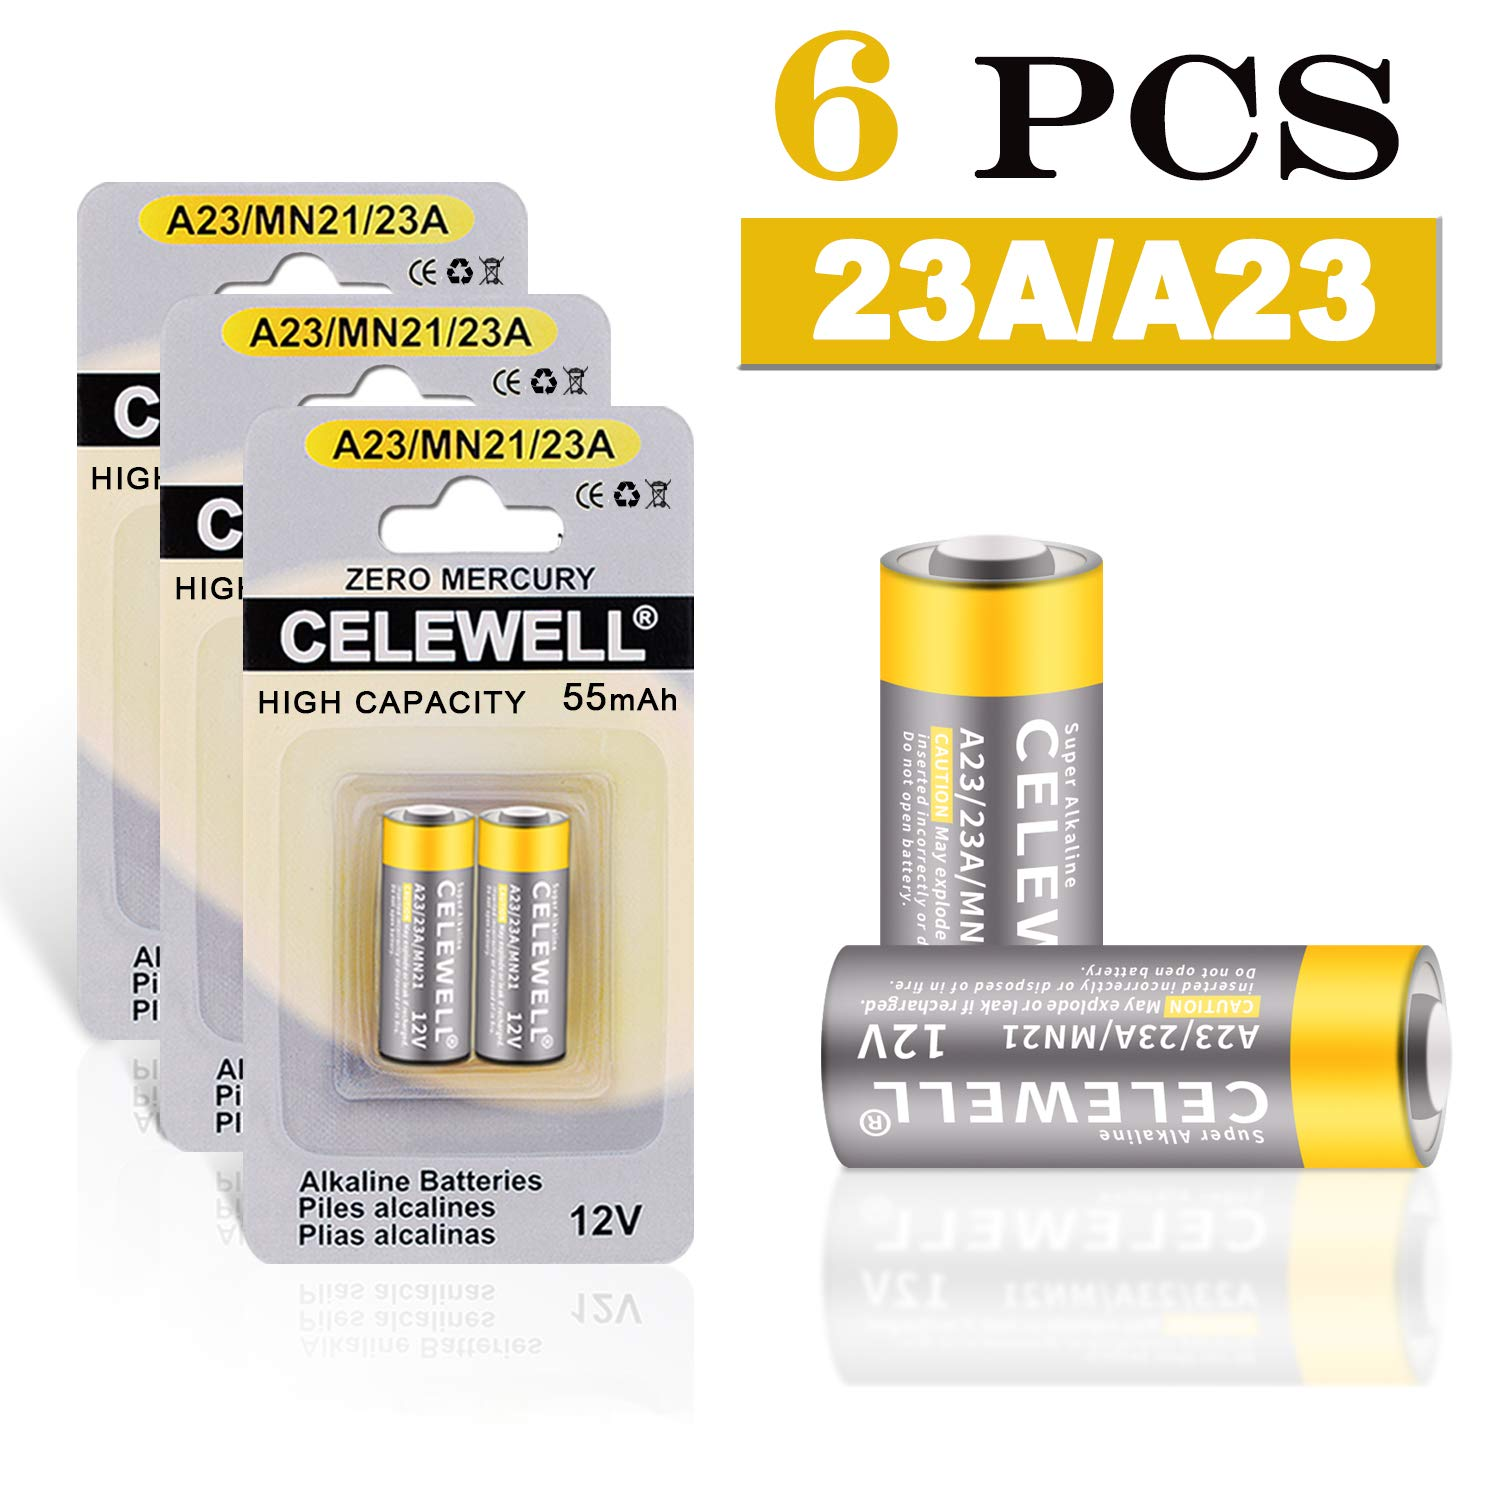 Loopacell A23 23A 21//23 MN21 12v Battery 15 Pk